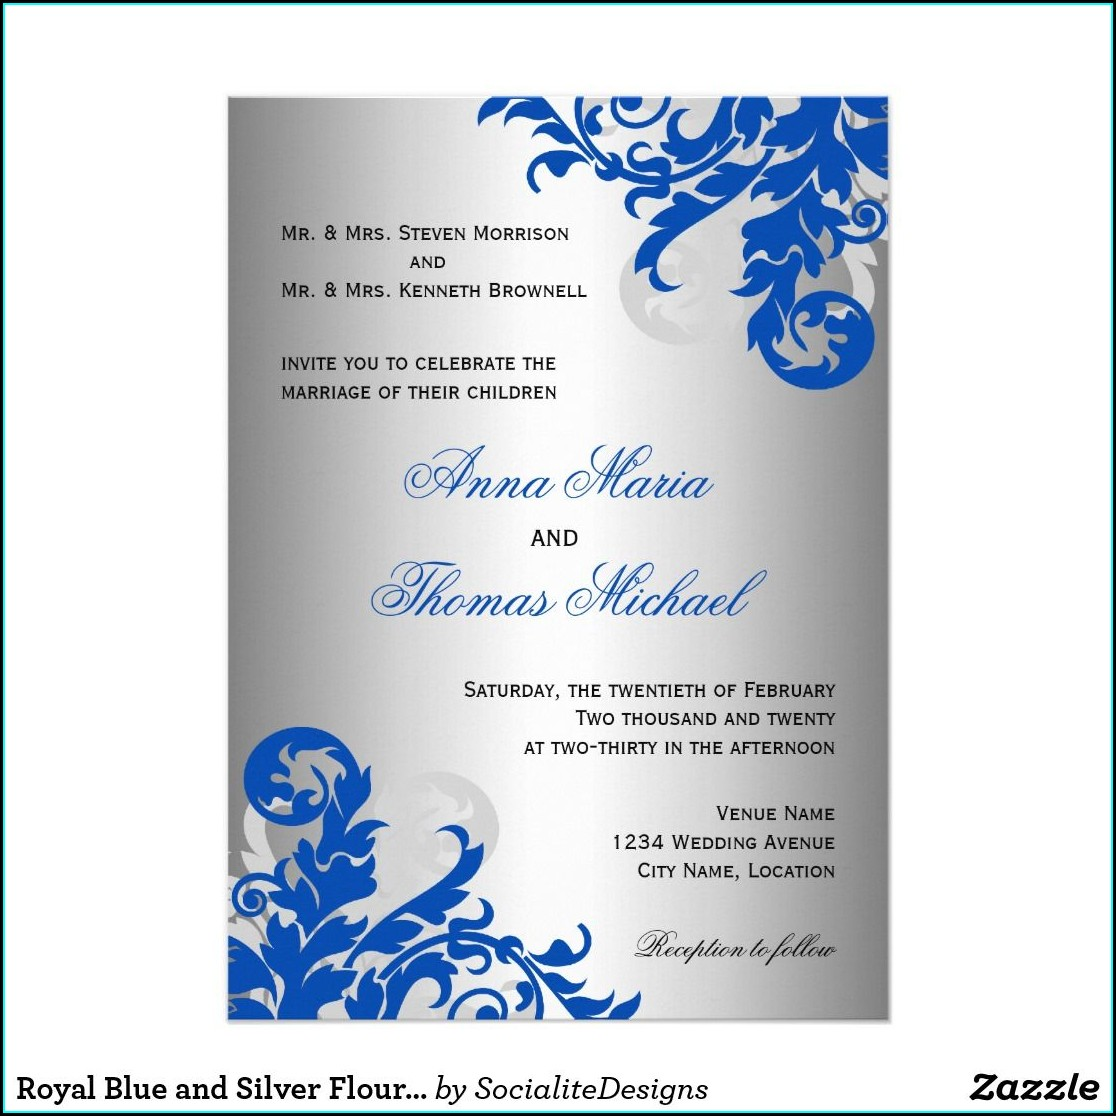 Blue Design Royal Blue Wedding Invitation Card Background Images